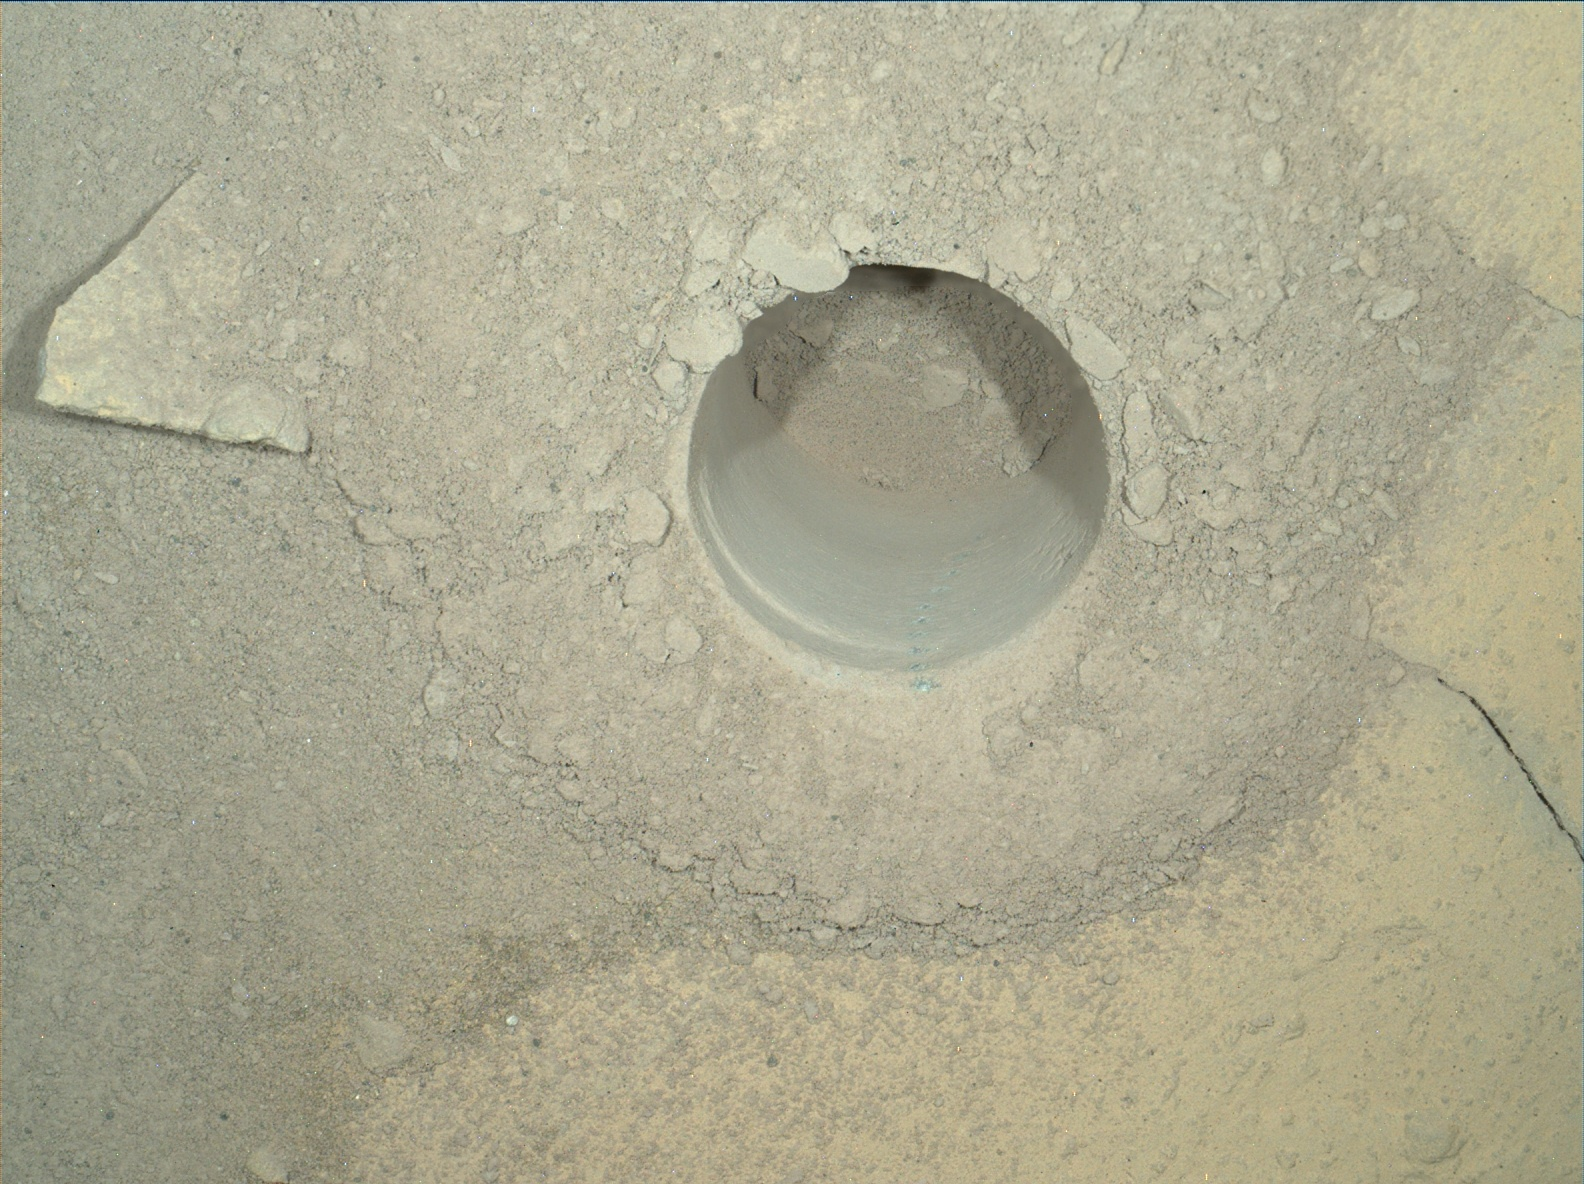 Nasa's Mars rover Curiosity acquired this image using its Mars Hand Lens Imager (MAHLI) on Sol 774